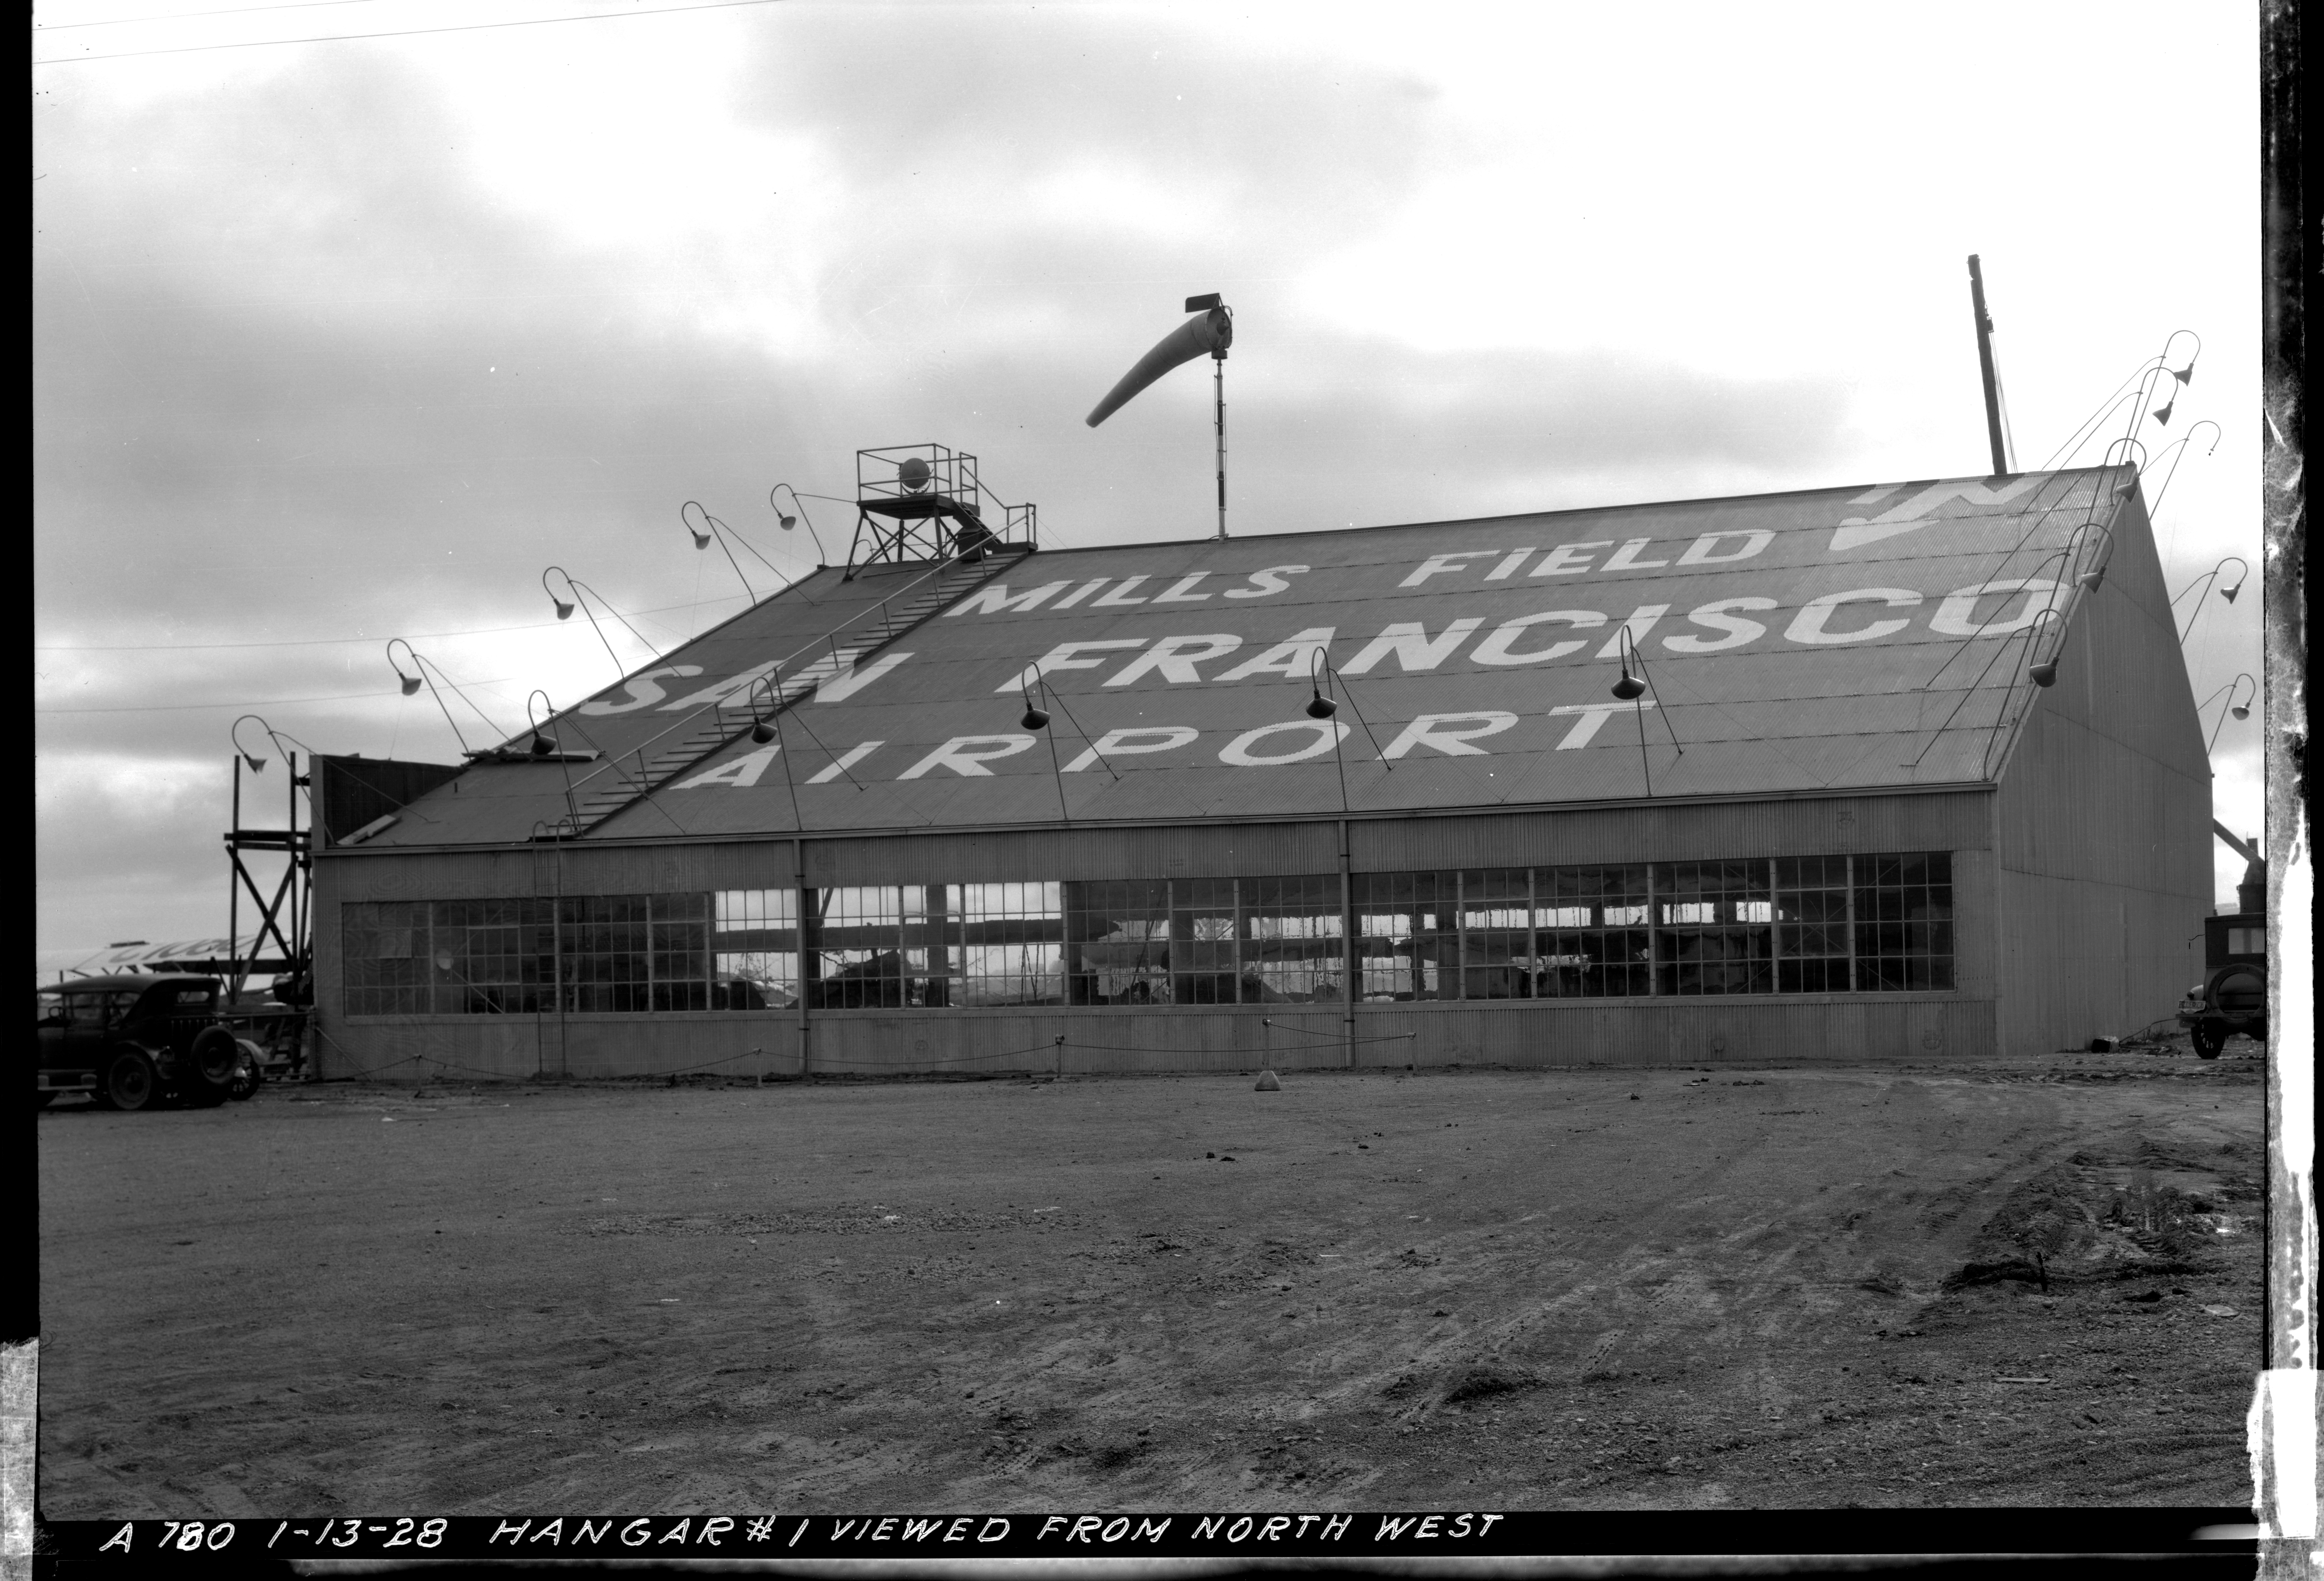 negative: Mills Field Municipal Airport of San Francisco, Hangar No. 1